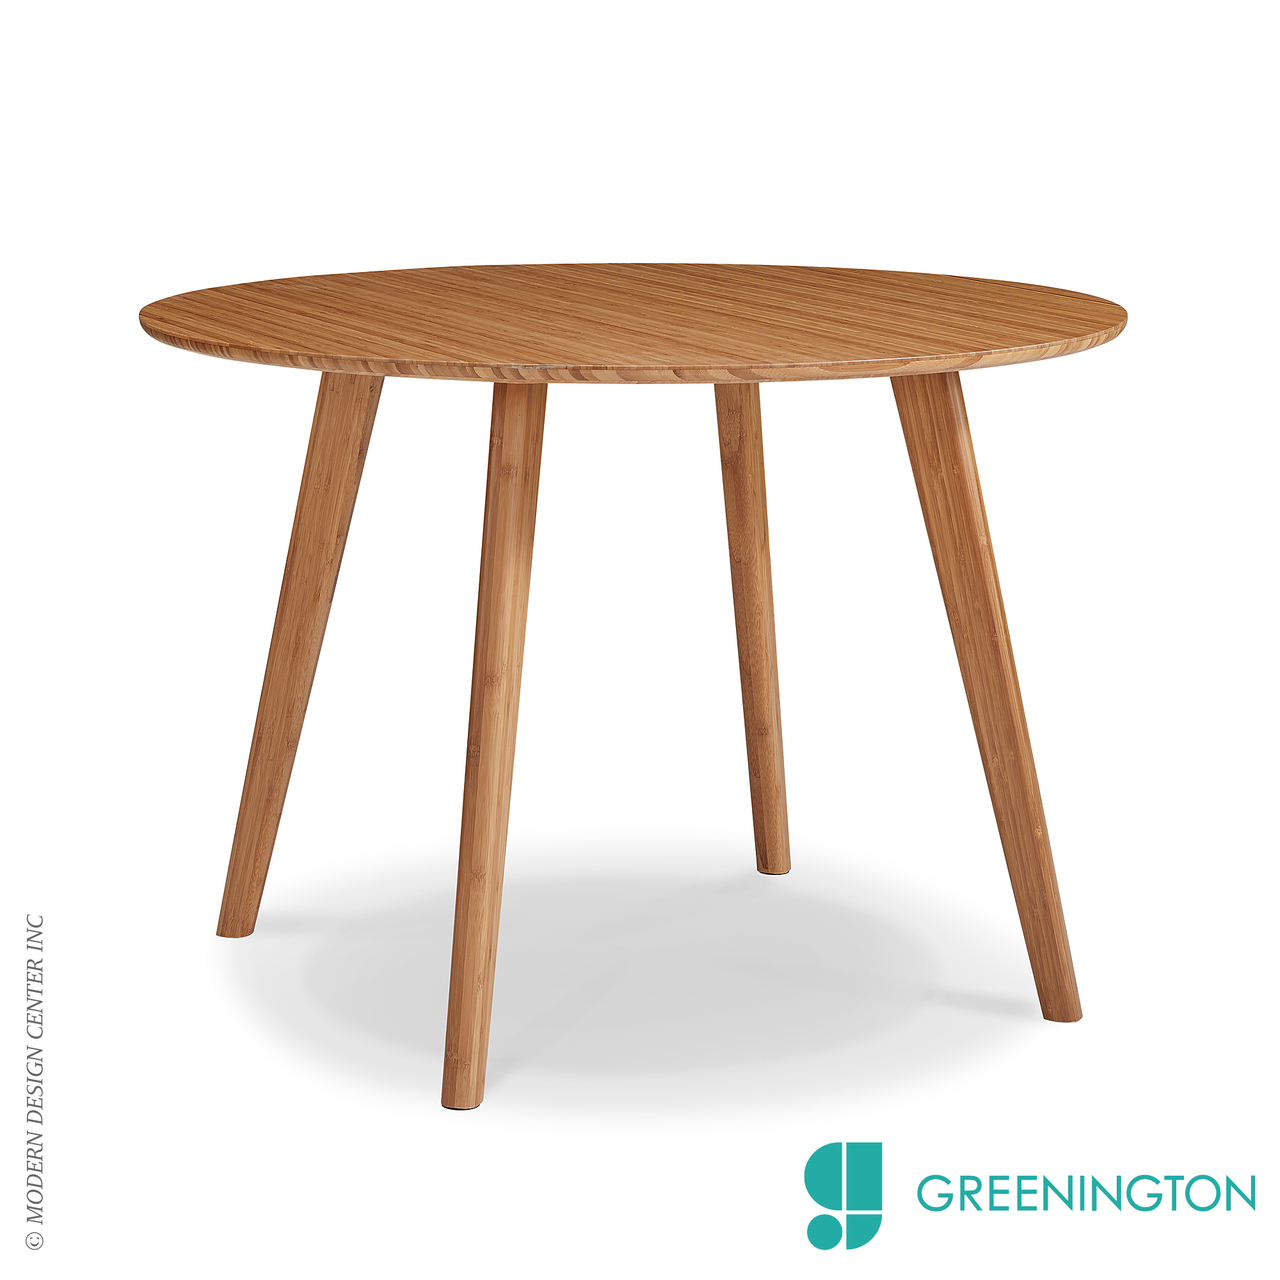 Currant 42-inch Round Dining Table | Greenington